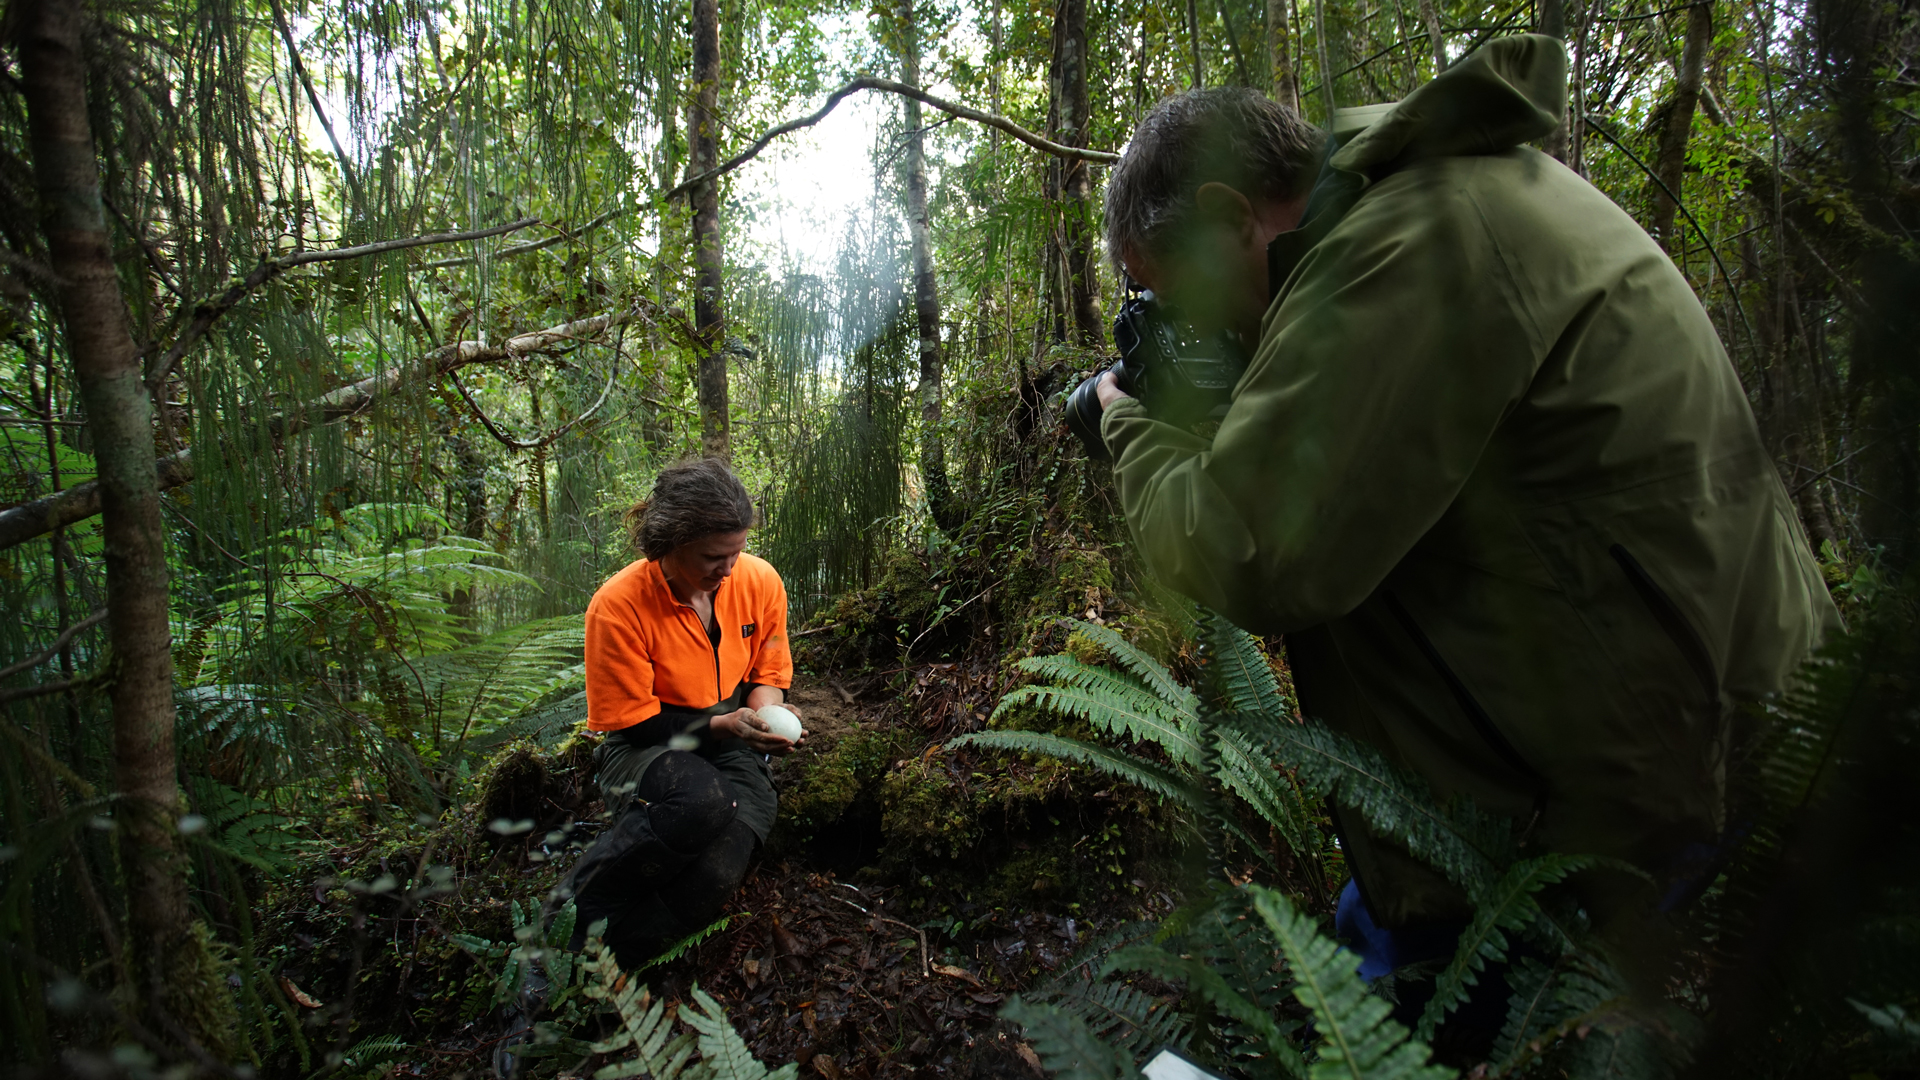 Episode 3 Preview - 0:30 - Travel with photographer Joel Sartore as he adds vibrant insects to his Photo Ark collection and searches for larger animals in Budapest and Prague. Joel also tags along on a Rowi kiwi egg rescue in New Zealand.